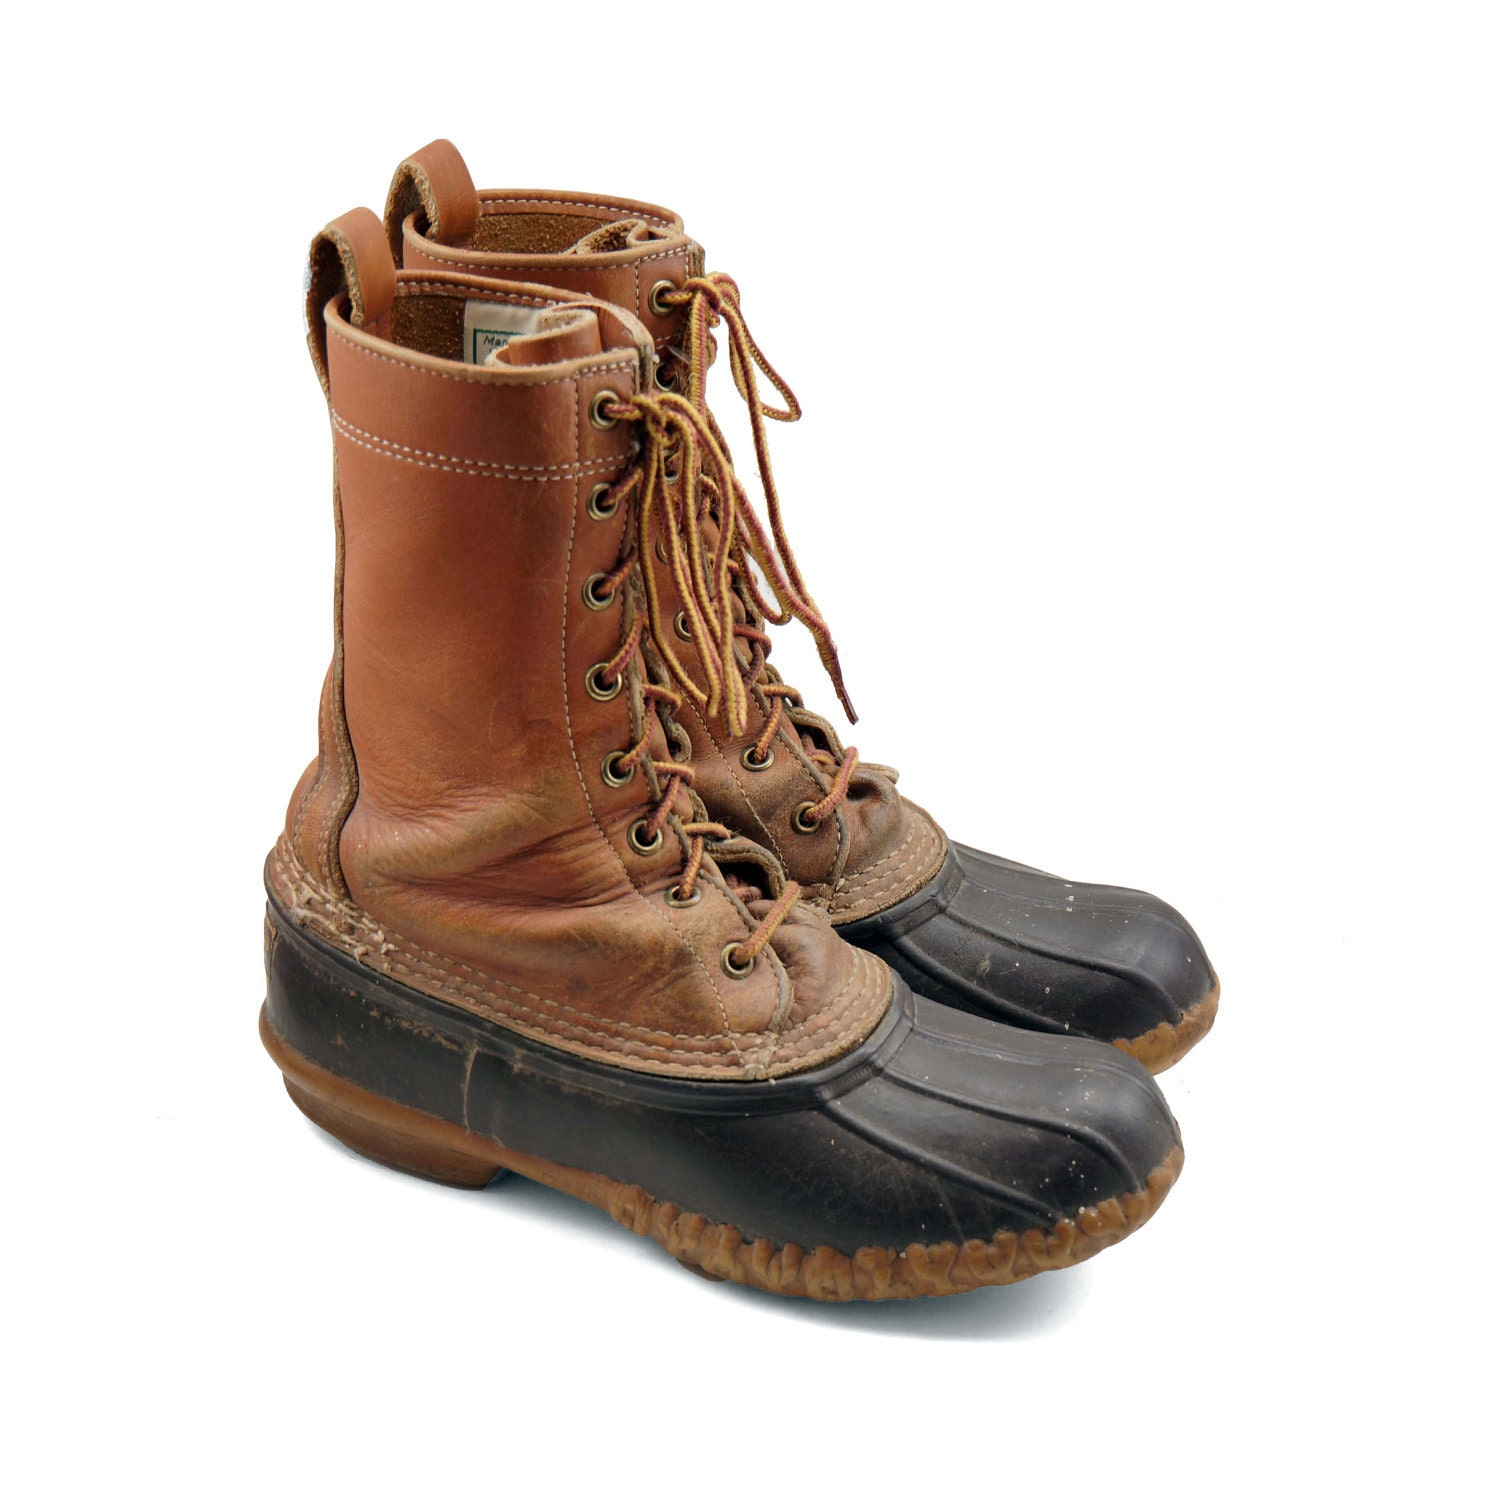 Creative Its A Pair Of $585 Duck Boots, Called The Yeezy Boost 950 The Utilitarian Boot Doesnt Much Resemble The Original Hunters Footwear Created By LL Bean, Which Continues To Be Insanely Popular, Except For The Rubberized Bottom